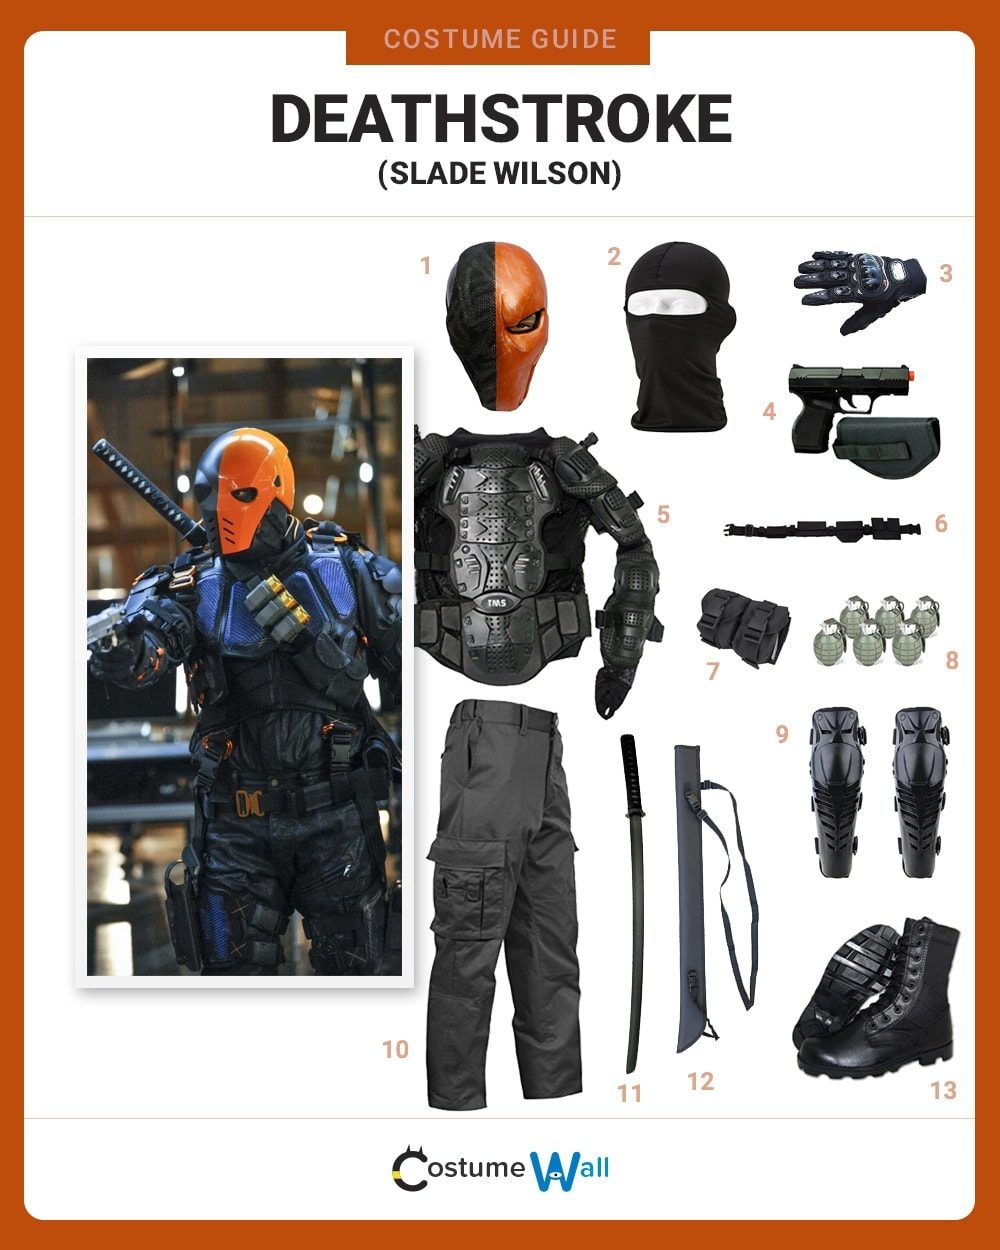 Deathstroke Costume Guide